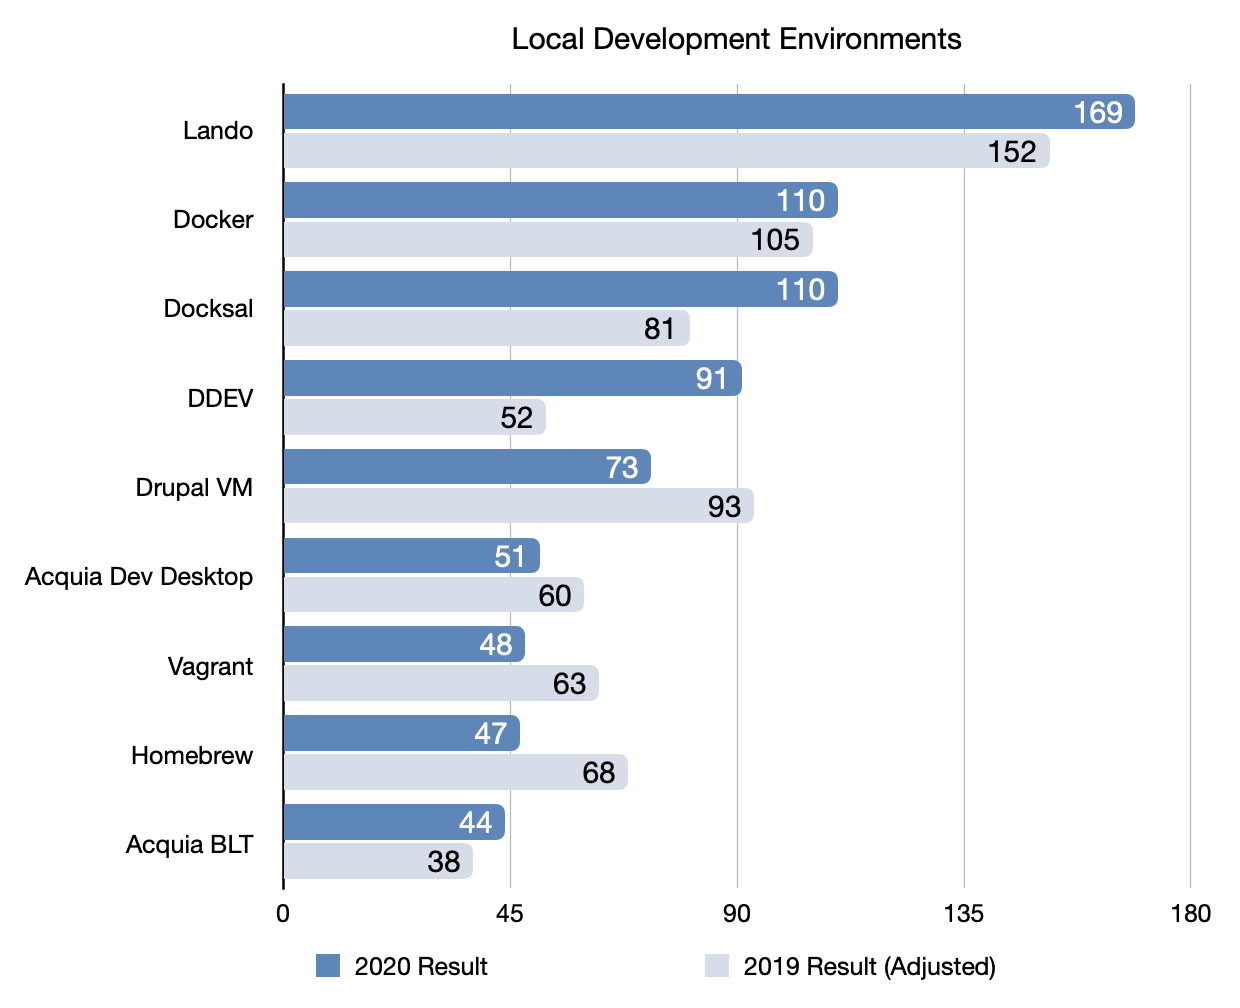 2020 Local Development Environment Results